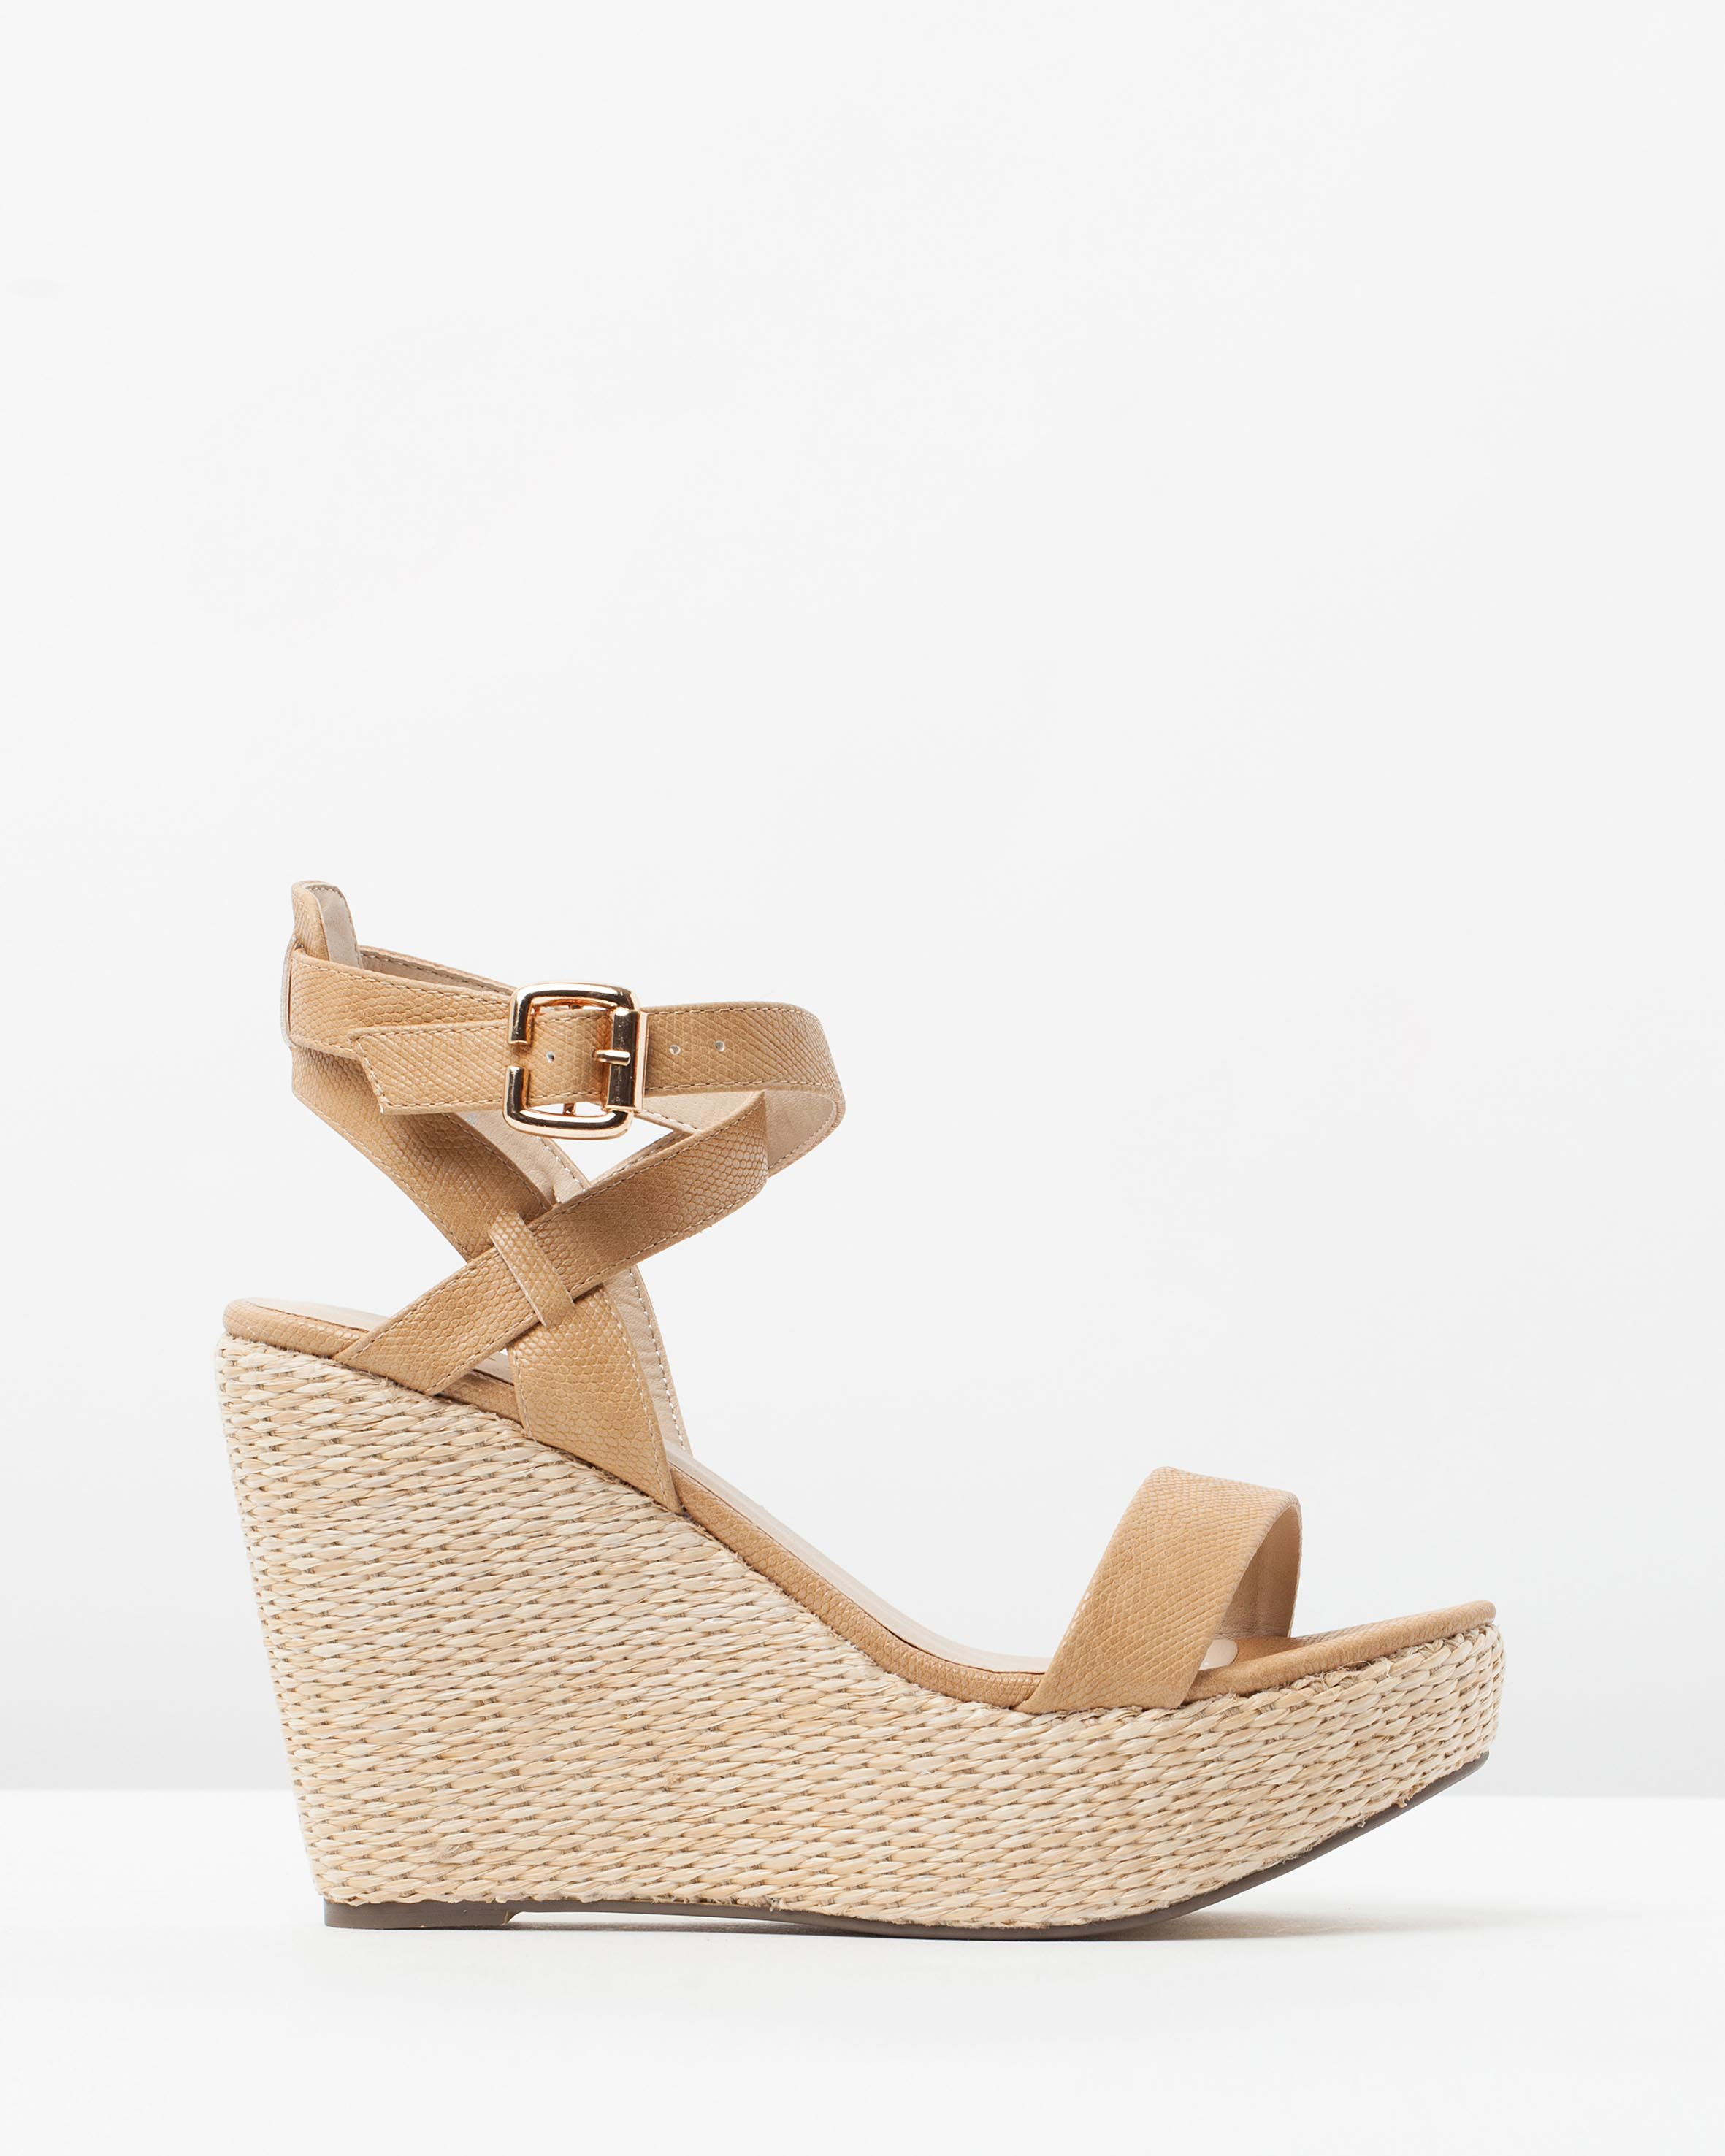 Wedges | Wedge Shoes | Buy Womens Wedges Online Australia |- THE